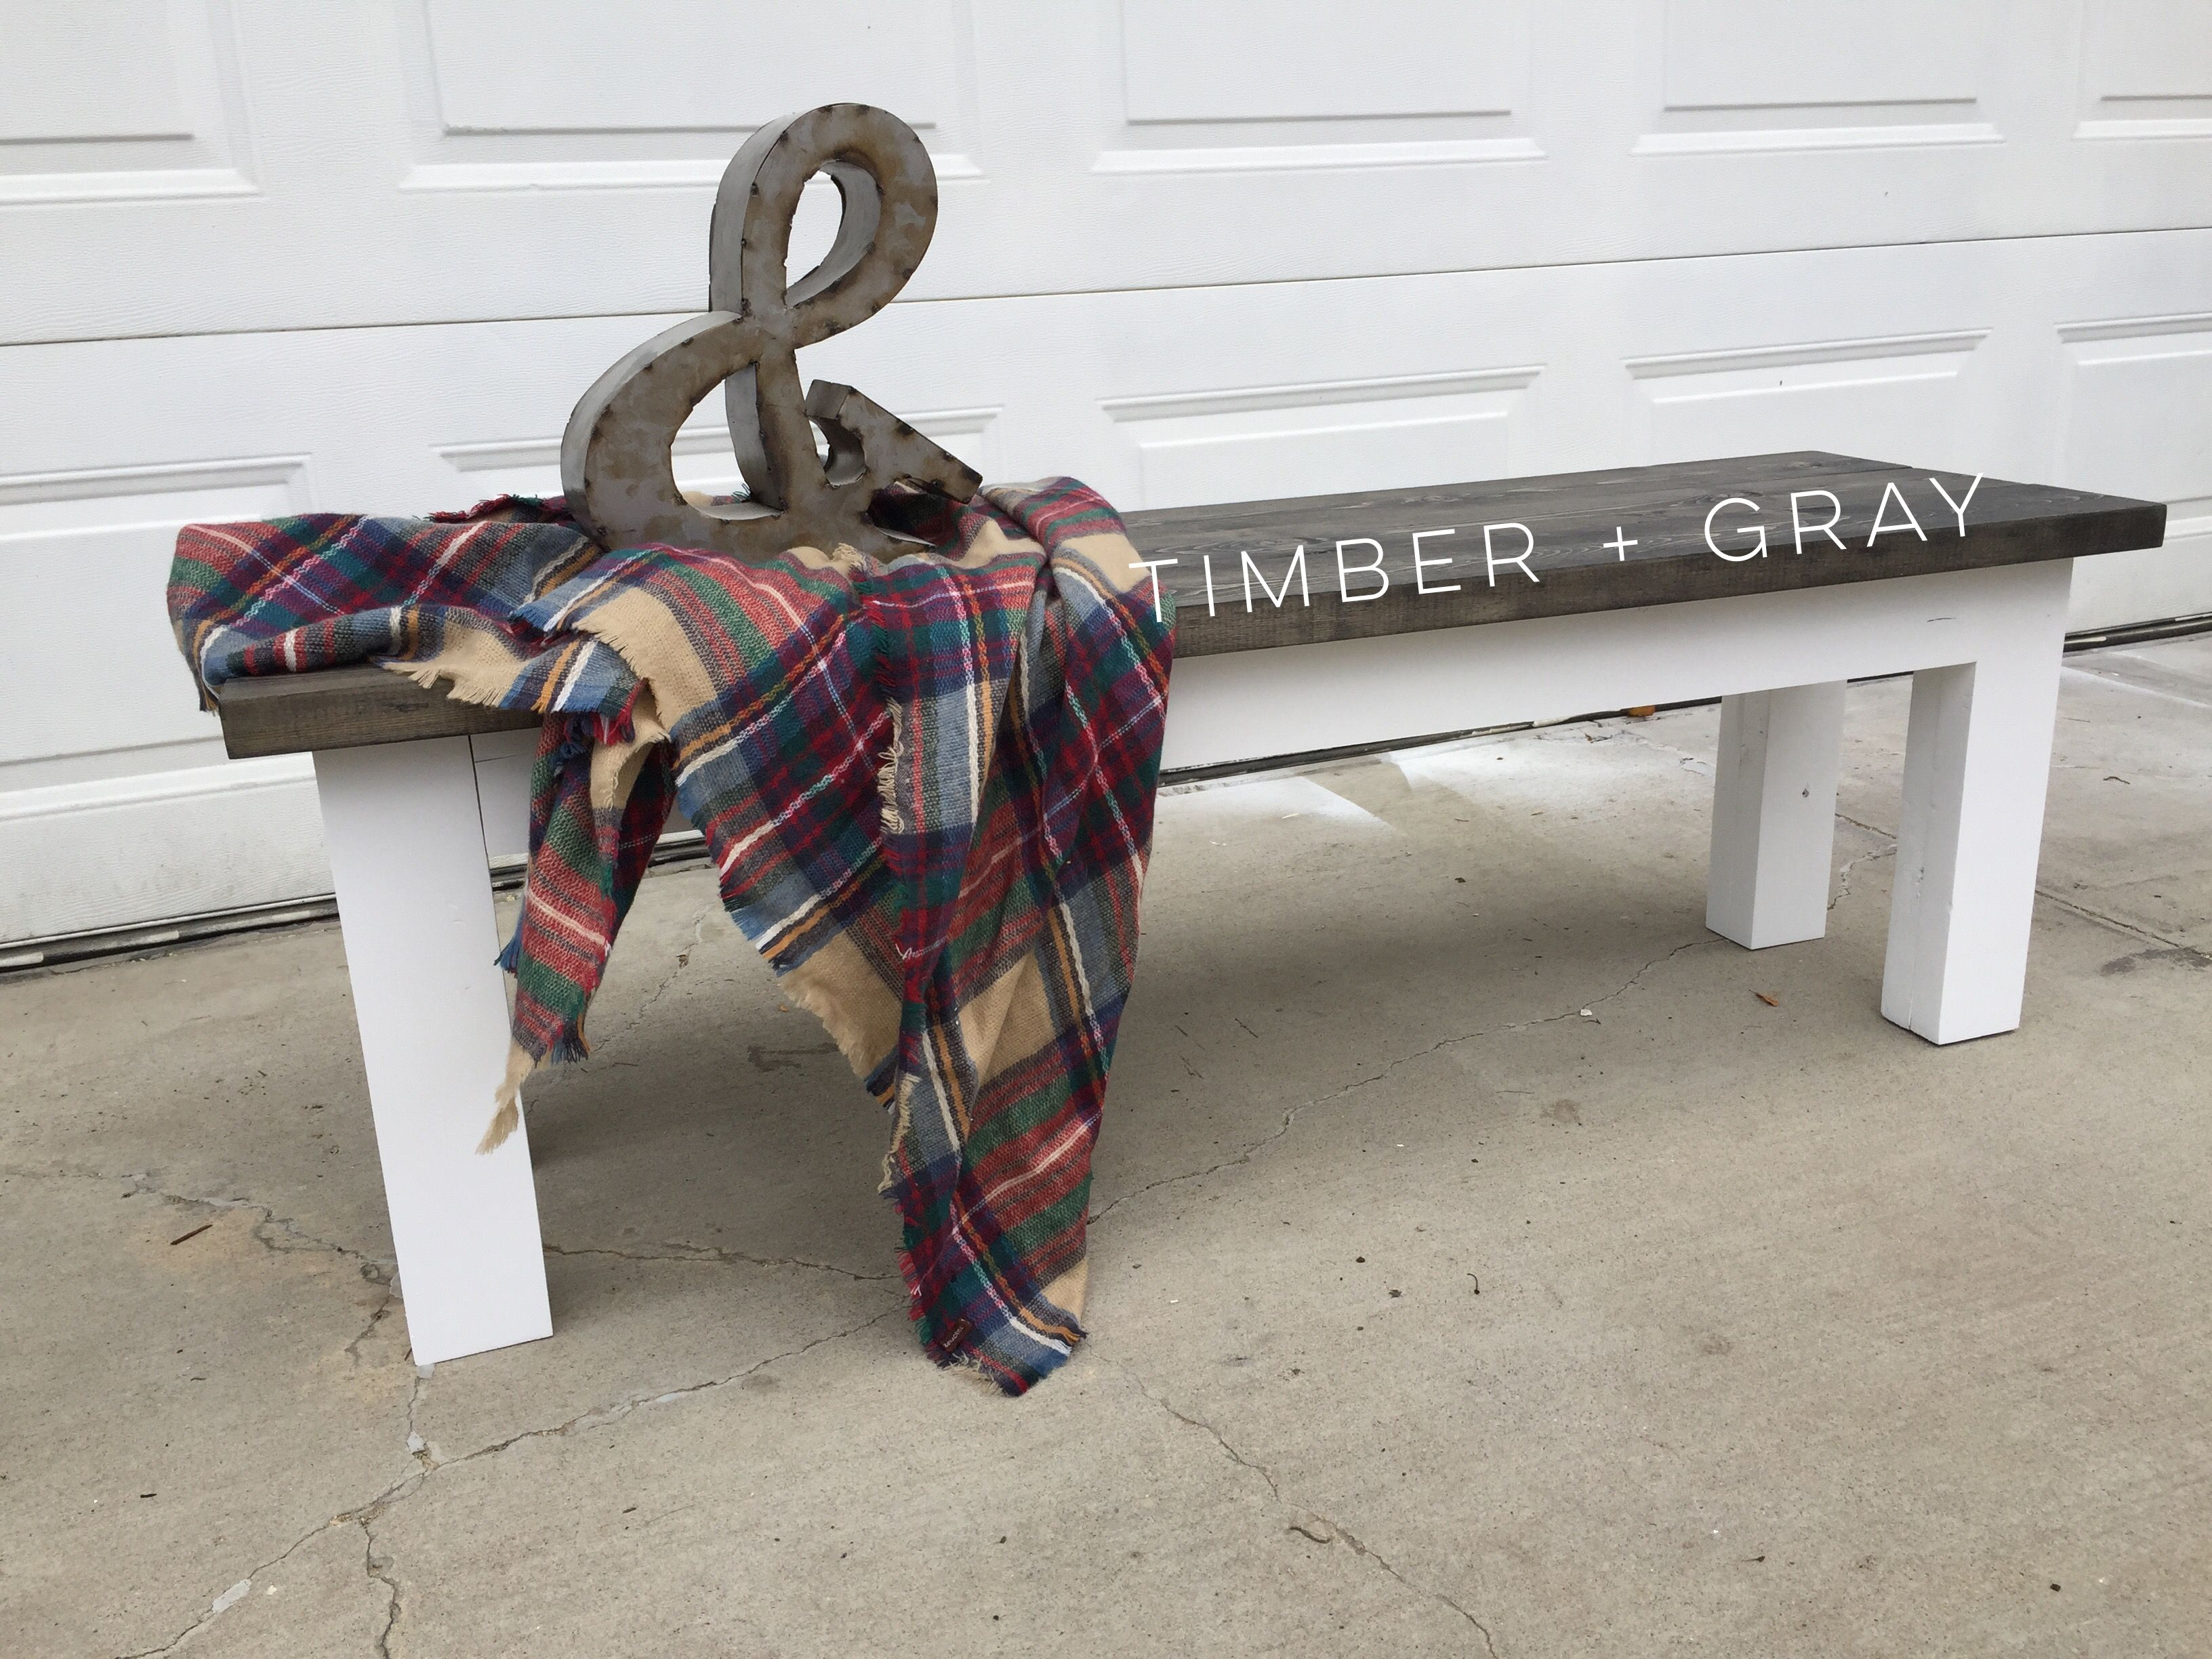 Timber Gray Design Co Is A Por Online Featuring Custom Farmhouse Wood Signs Home Decor Rustic Modern Hand Built Furniture